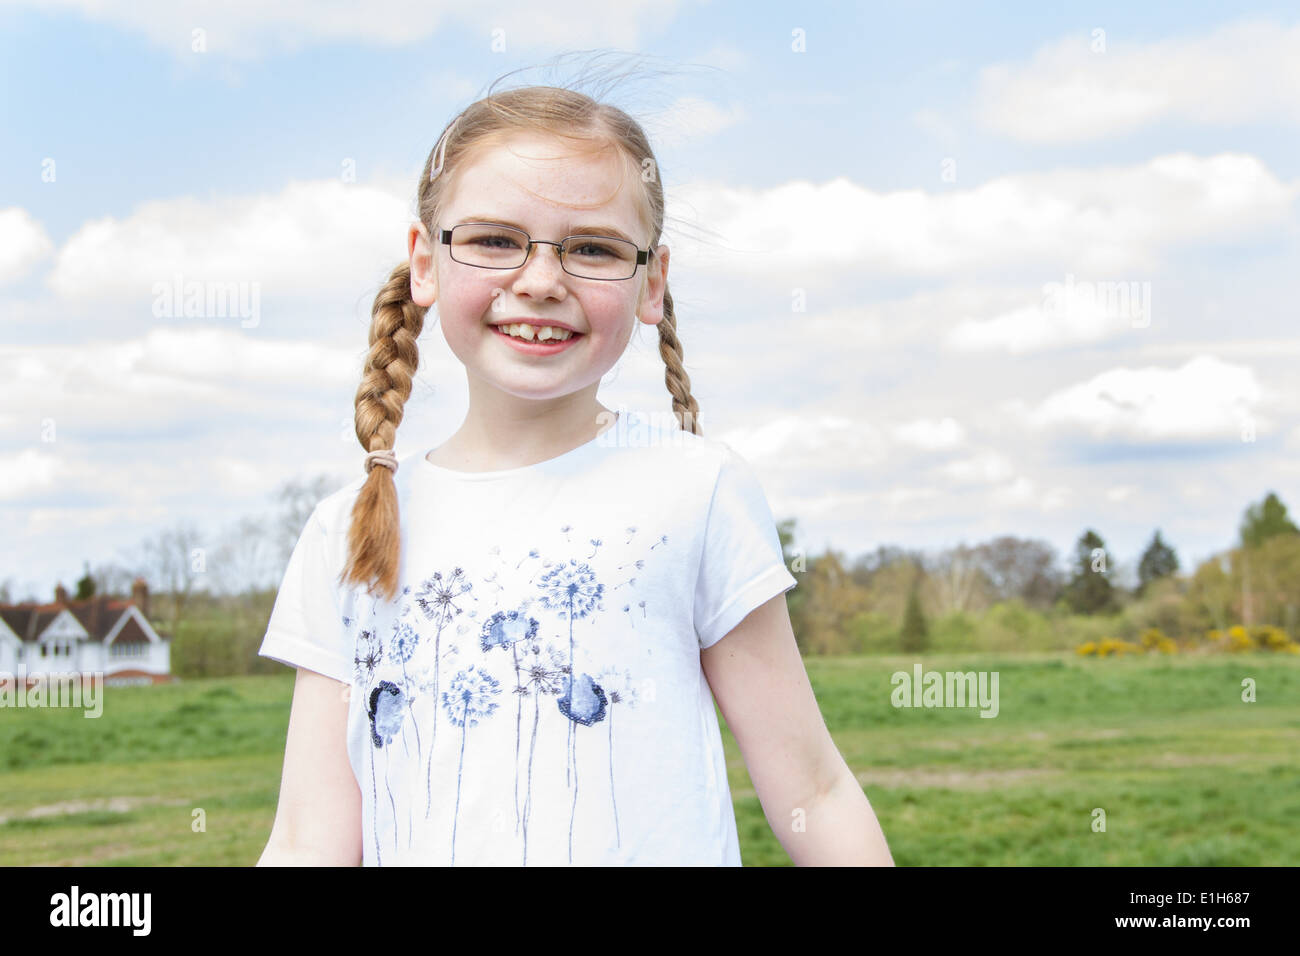 Portrait of girl with blond plaits - Stock Image